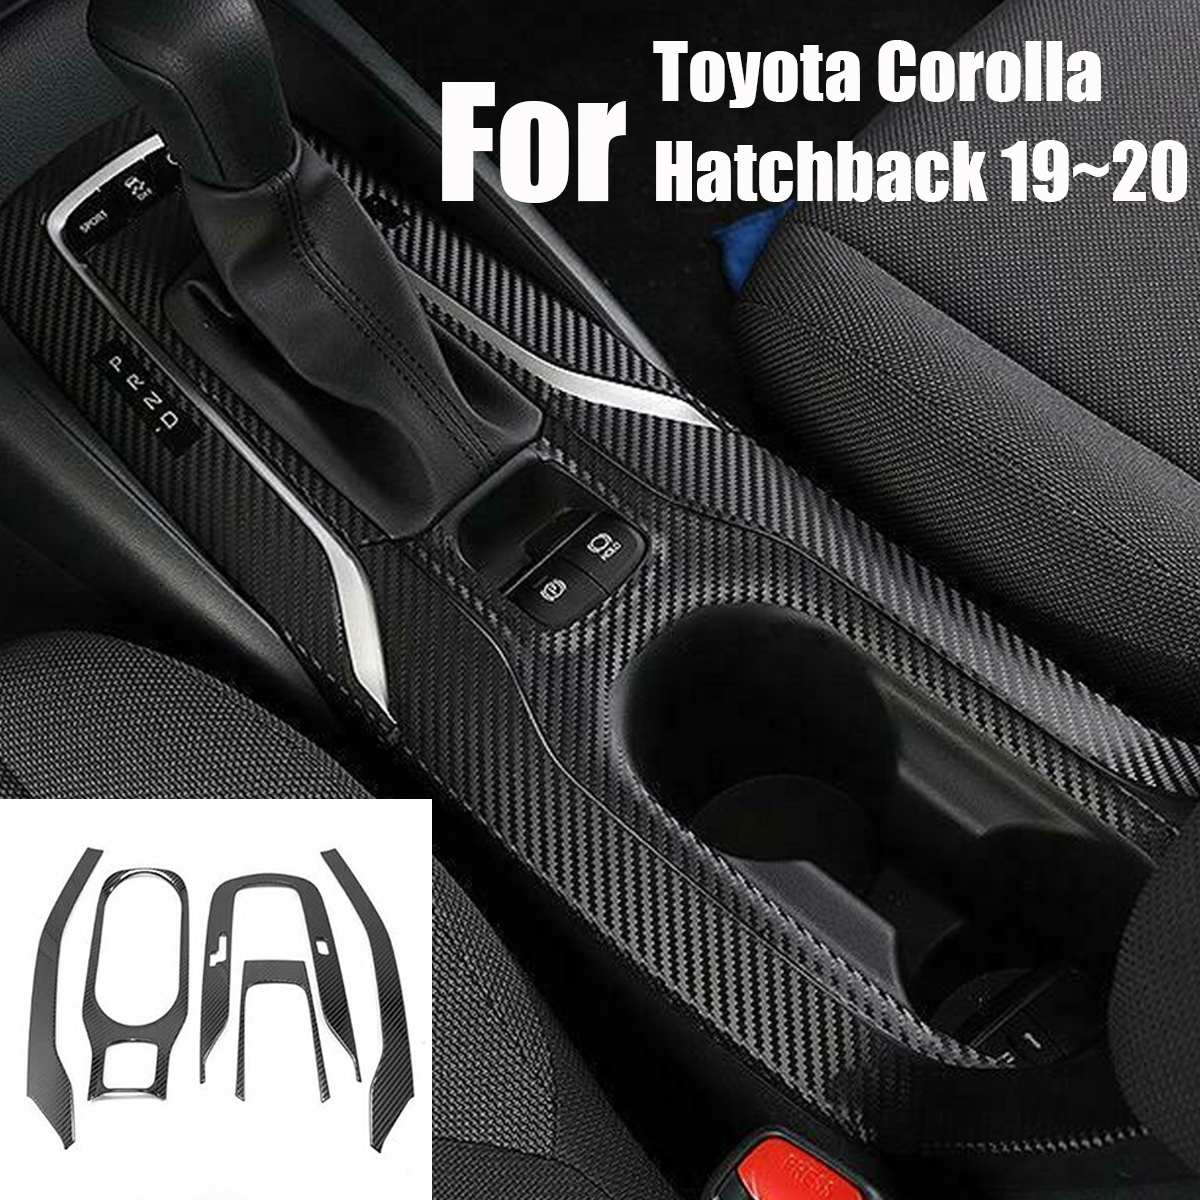 5 Pcs Carbon Fibre Style Interior Decoration Gear Panel Water Cup Holder Cover Trim For Toyota Corolla Hatchback 2019~2020